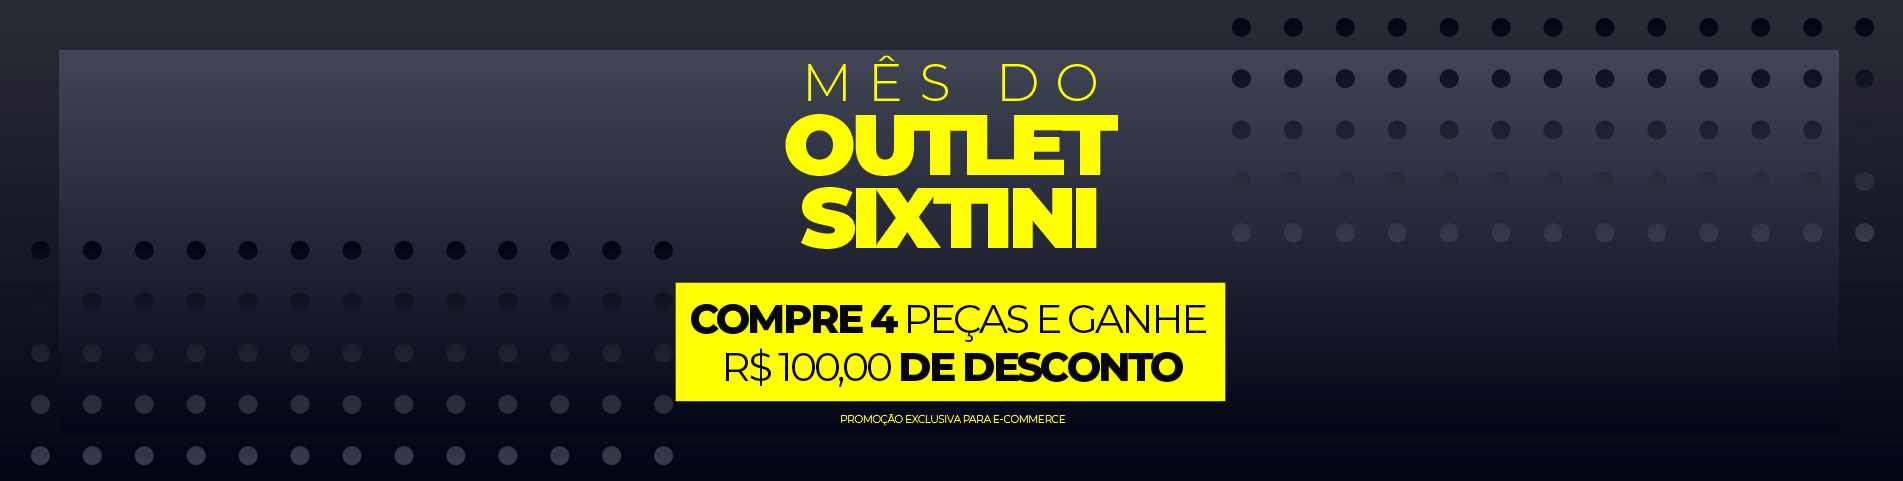 Outlet Sixtini